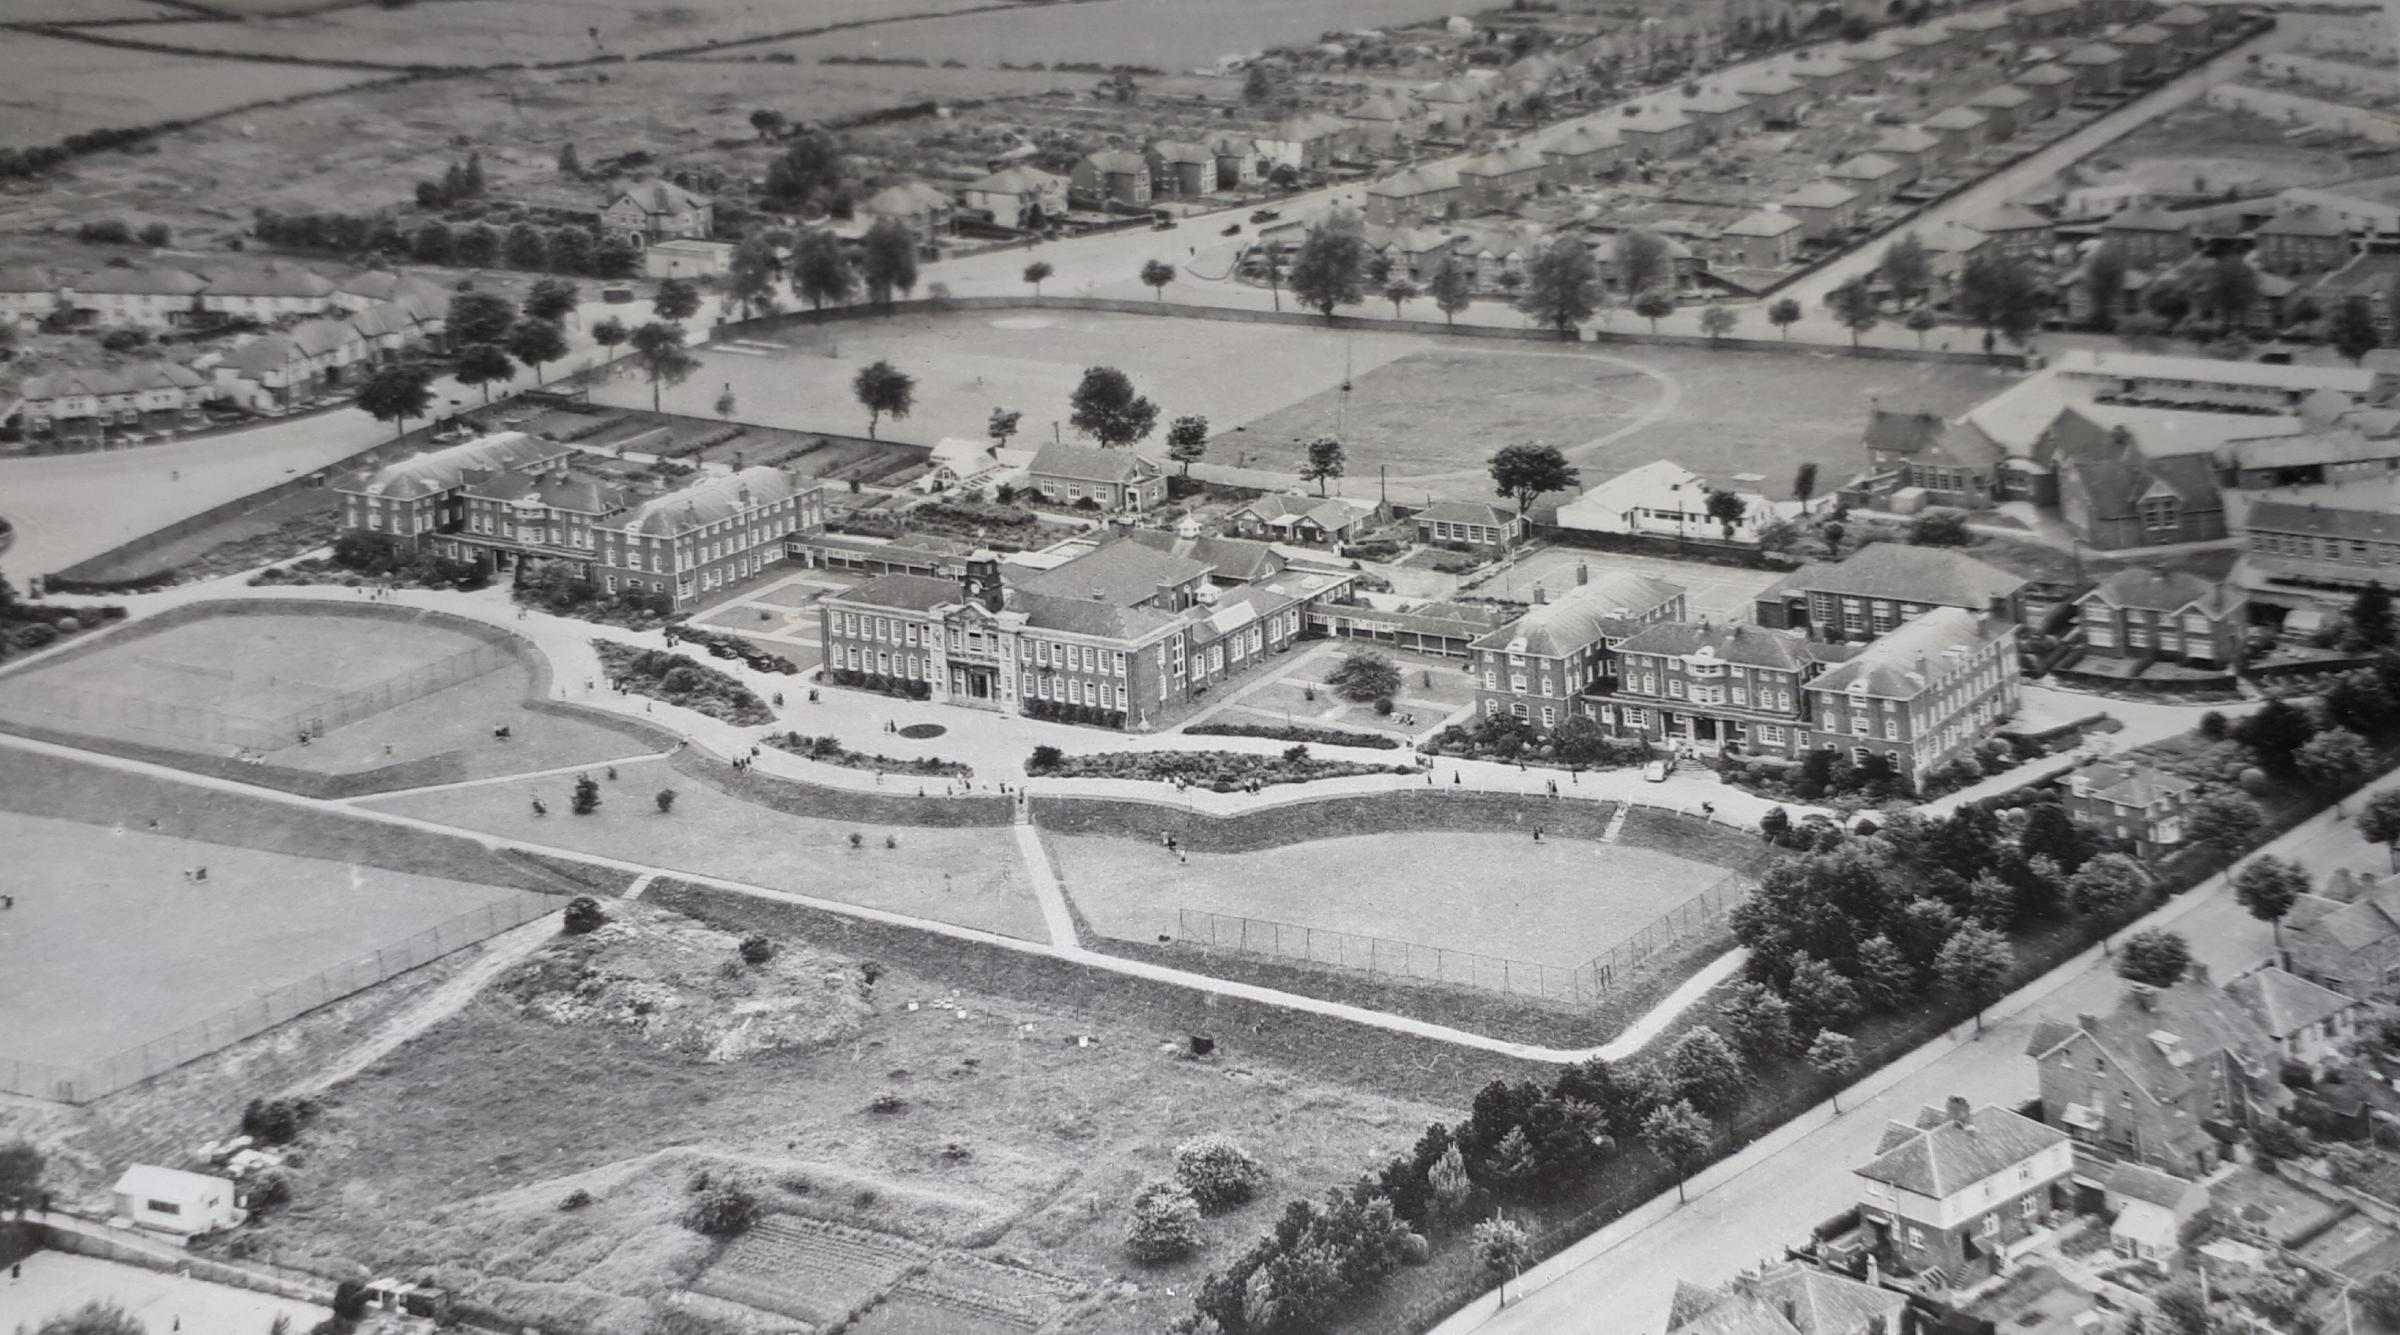 The Glamorgan Training College